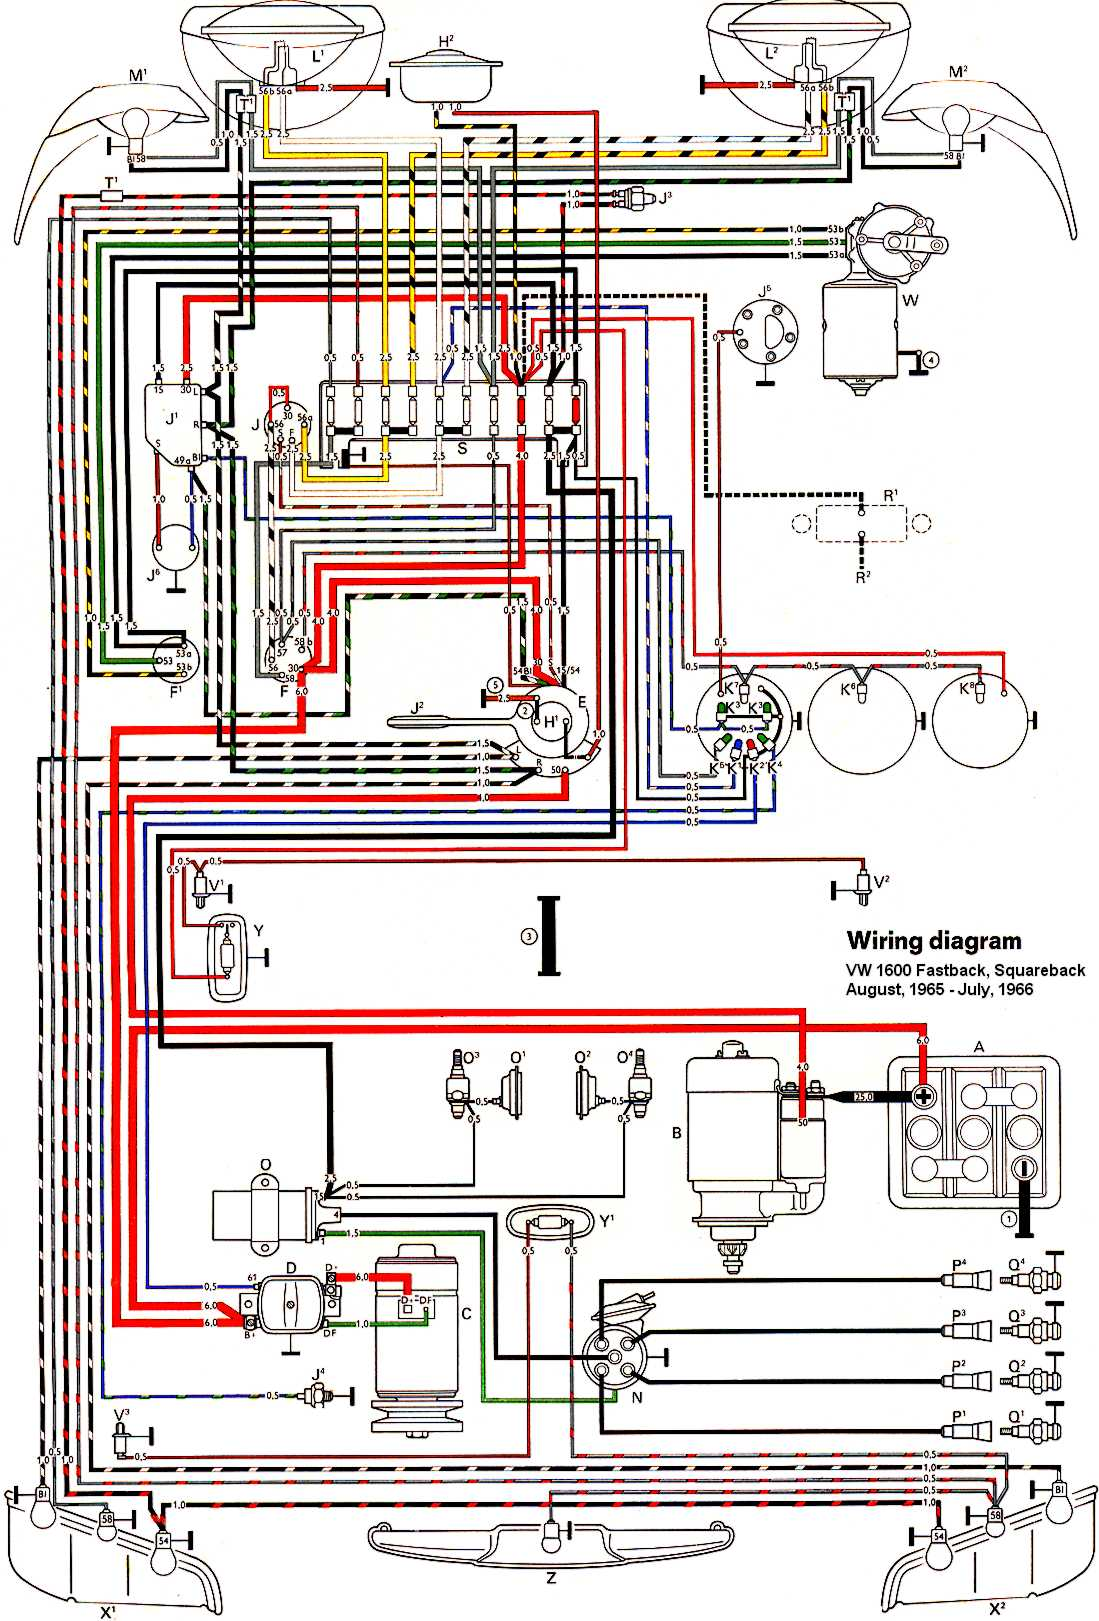 1963 volkswagen beetle wiring harness wiring diagram \u2022 Wiring Harness Diagram volkswagen type 3 wiring harness volkswagen type 4 wiring diagrams rh safe care co 1952 volkswagen